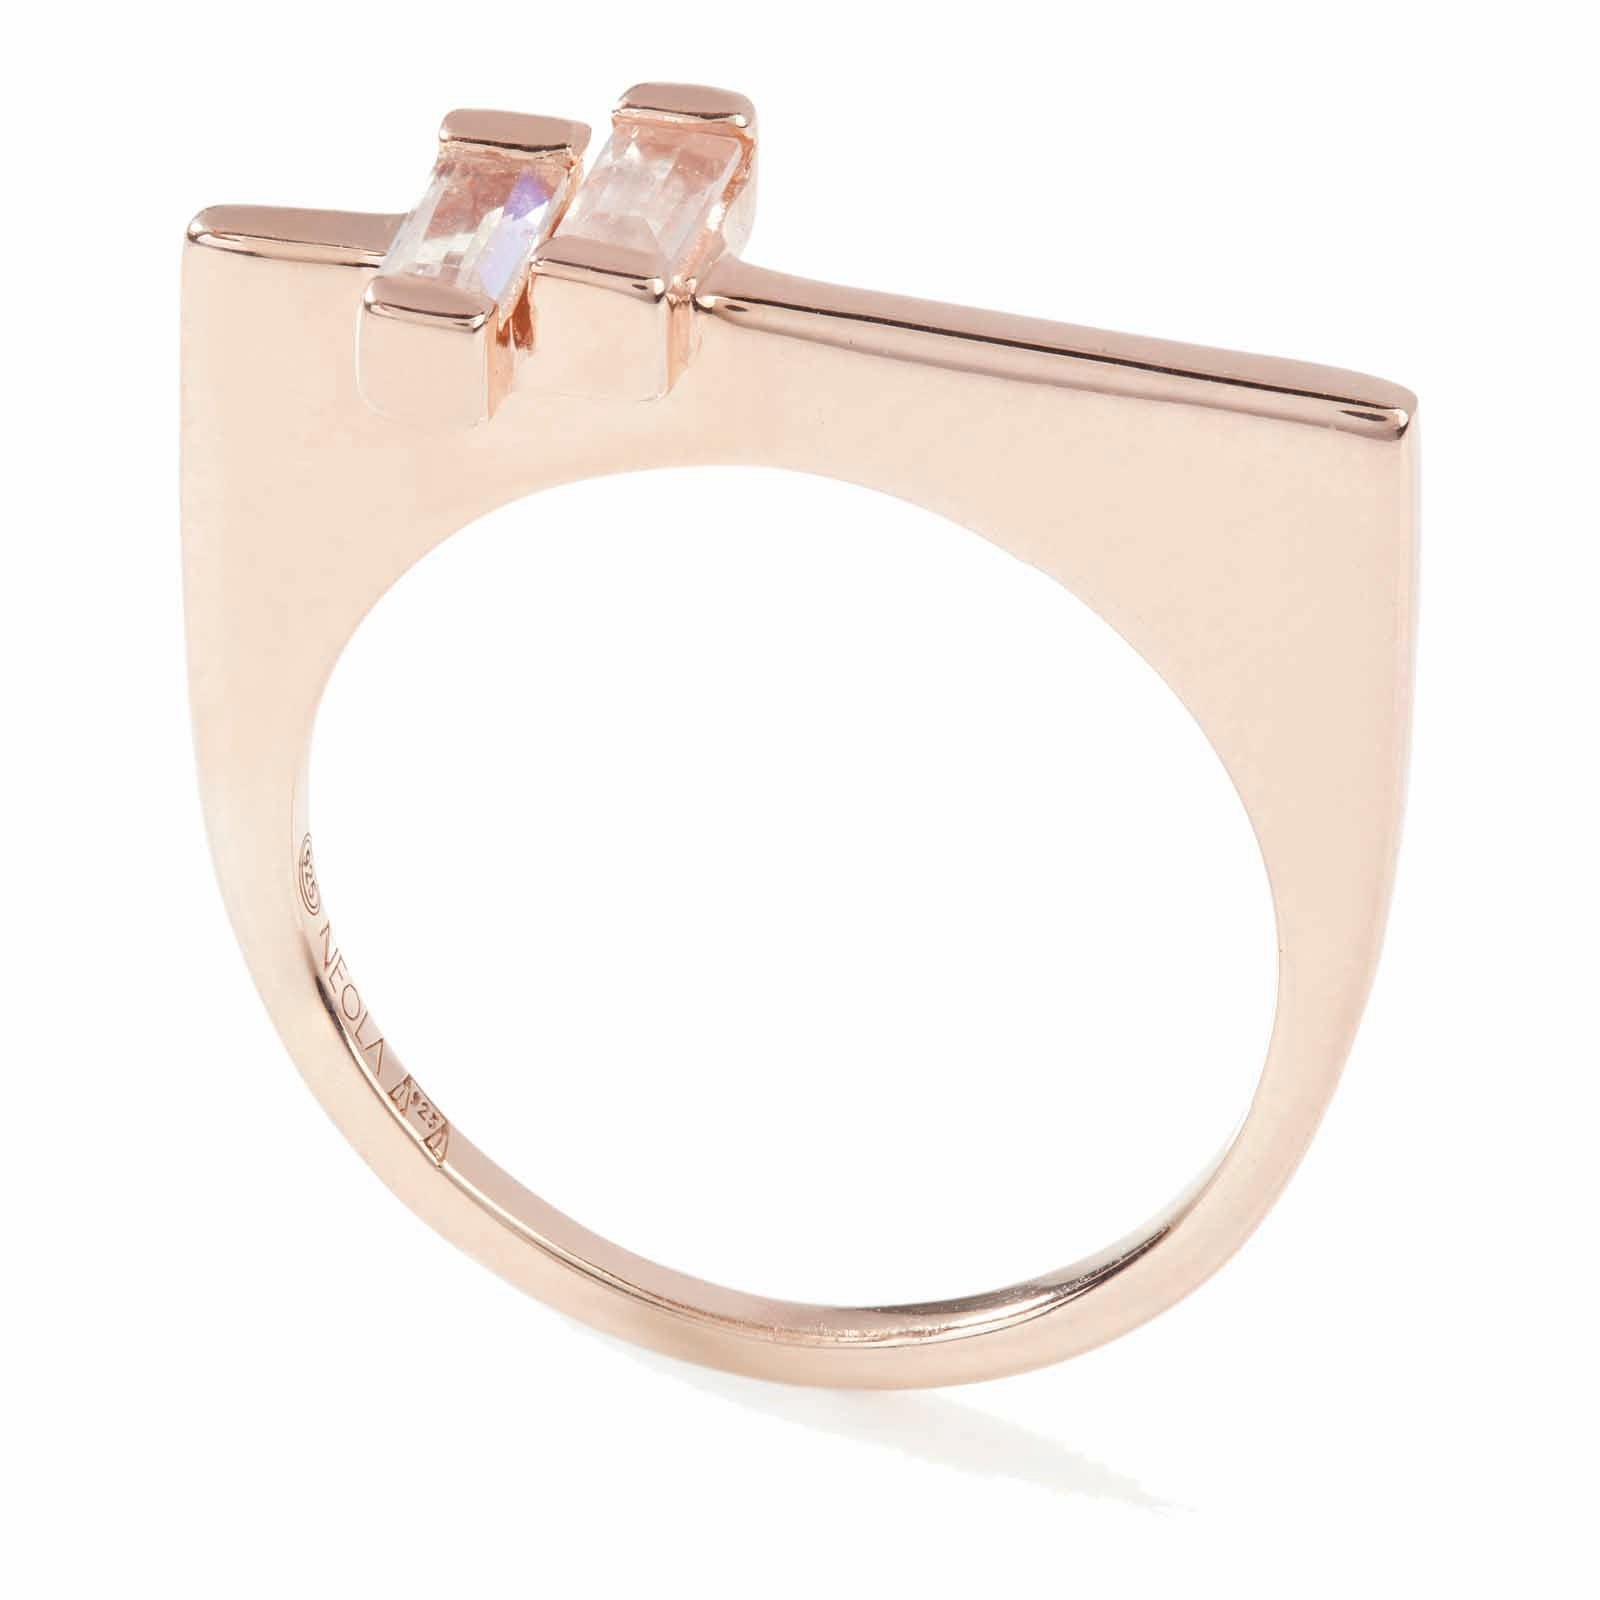 18ct rose gold vermeil set insterling silver. Anais ring with rose quartz. Fine British jewellery ethically handmade